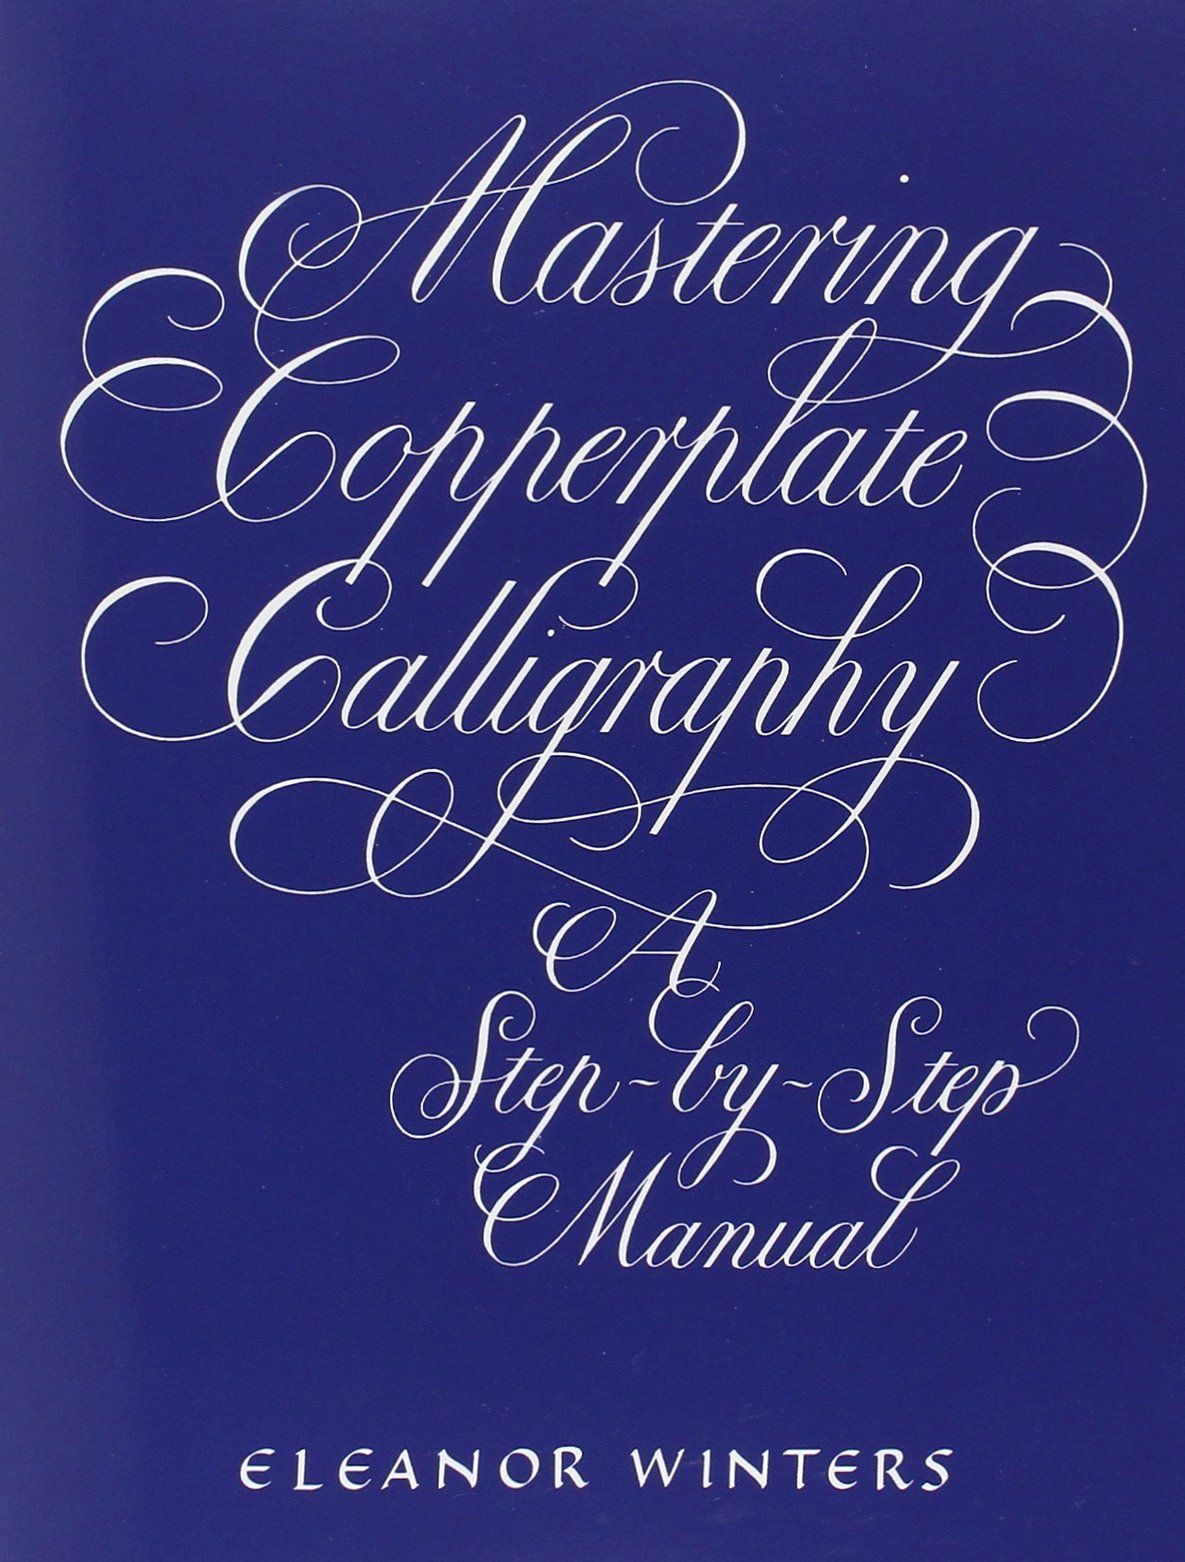 Mastering Copperplate Calligraphy Lettering Calligraphy